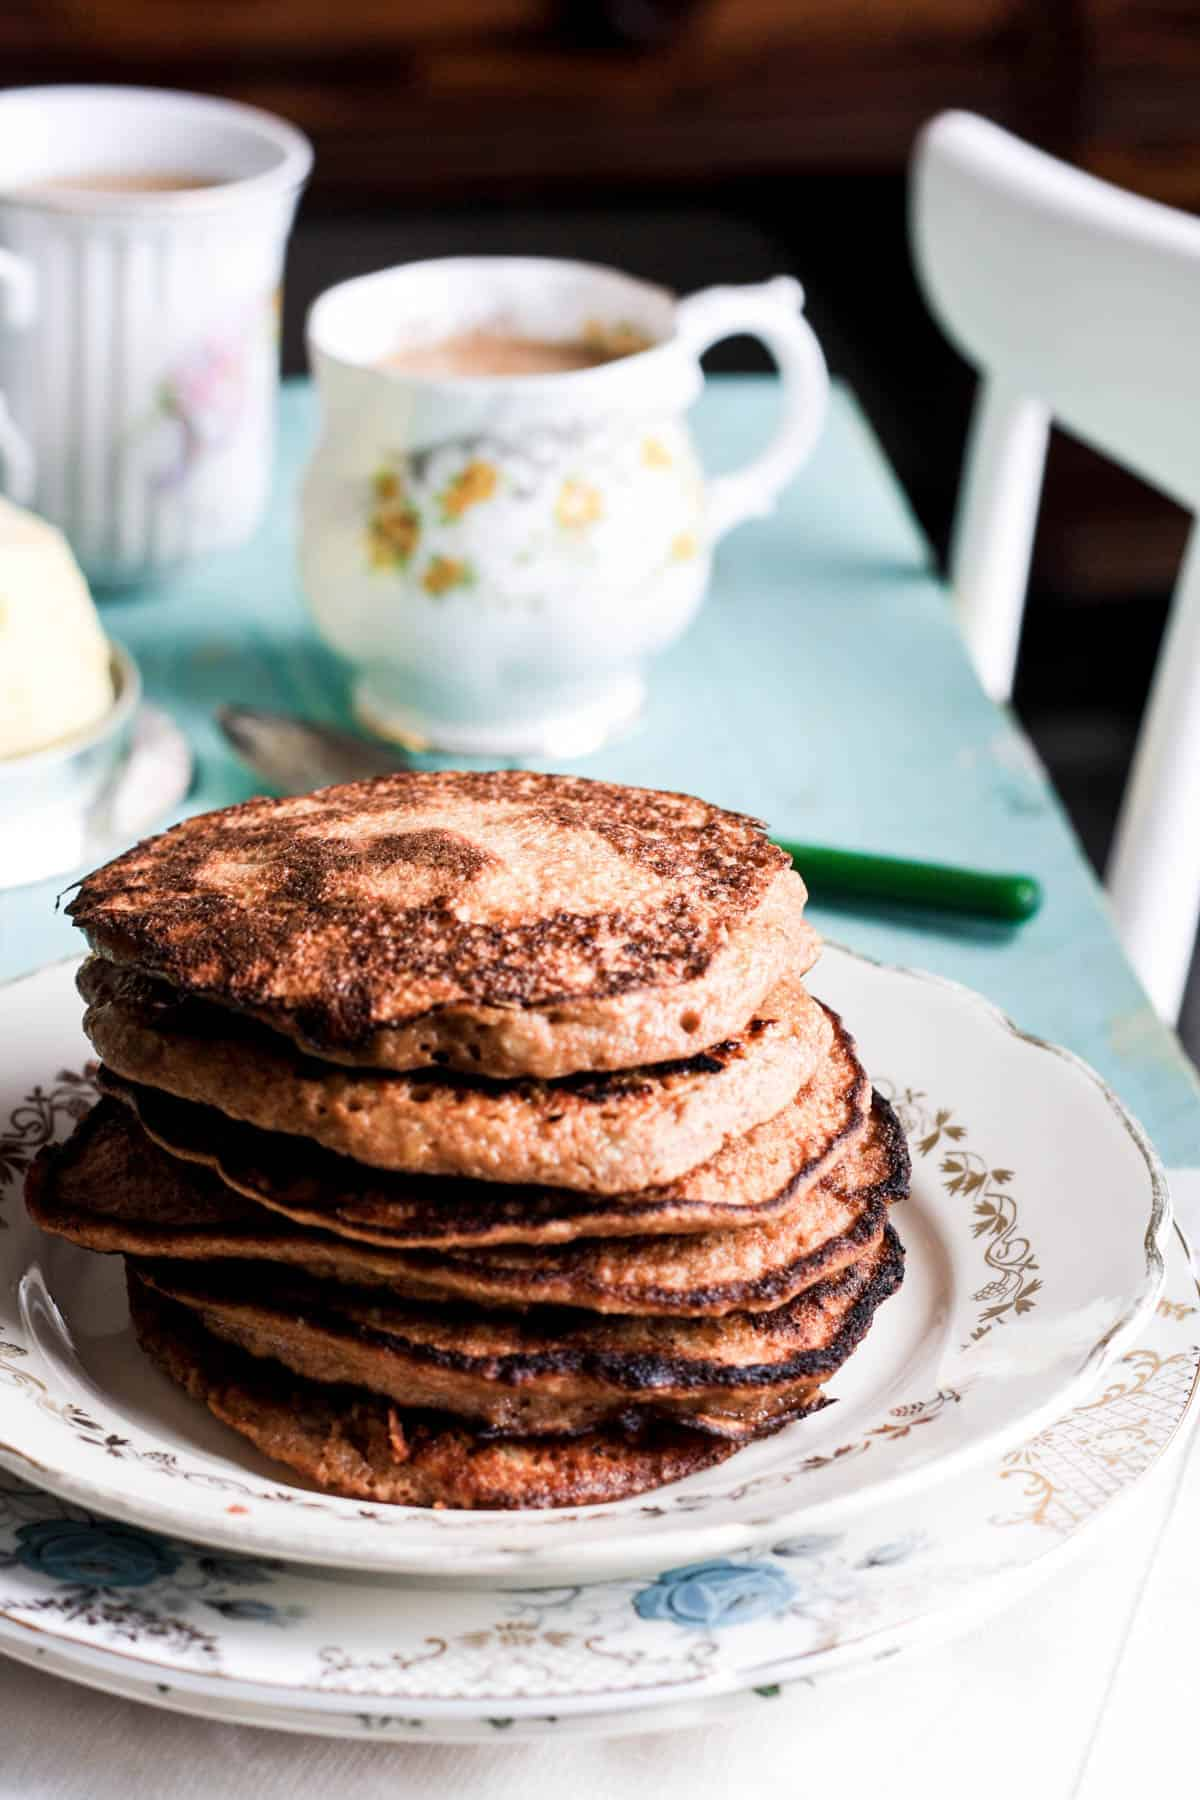 A stack of Banana and Walnut Paleo Pancakes on a plate